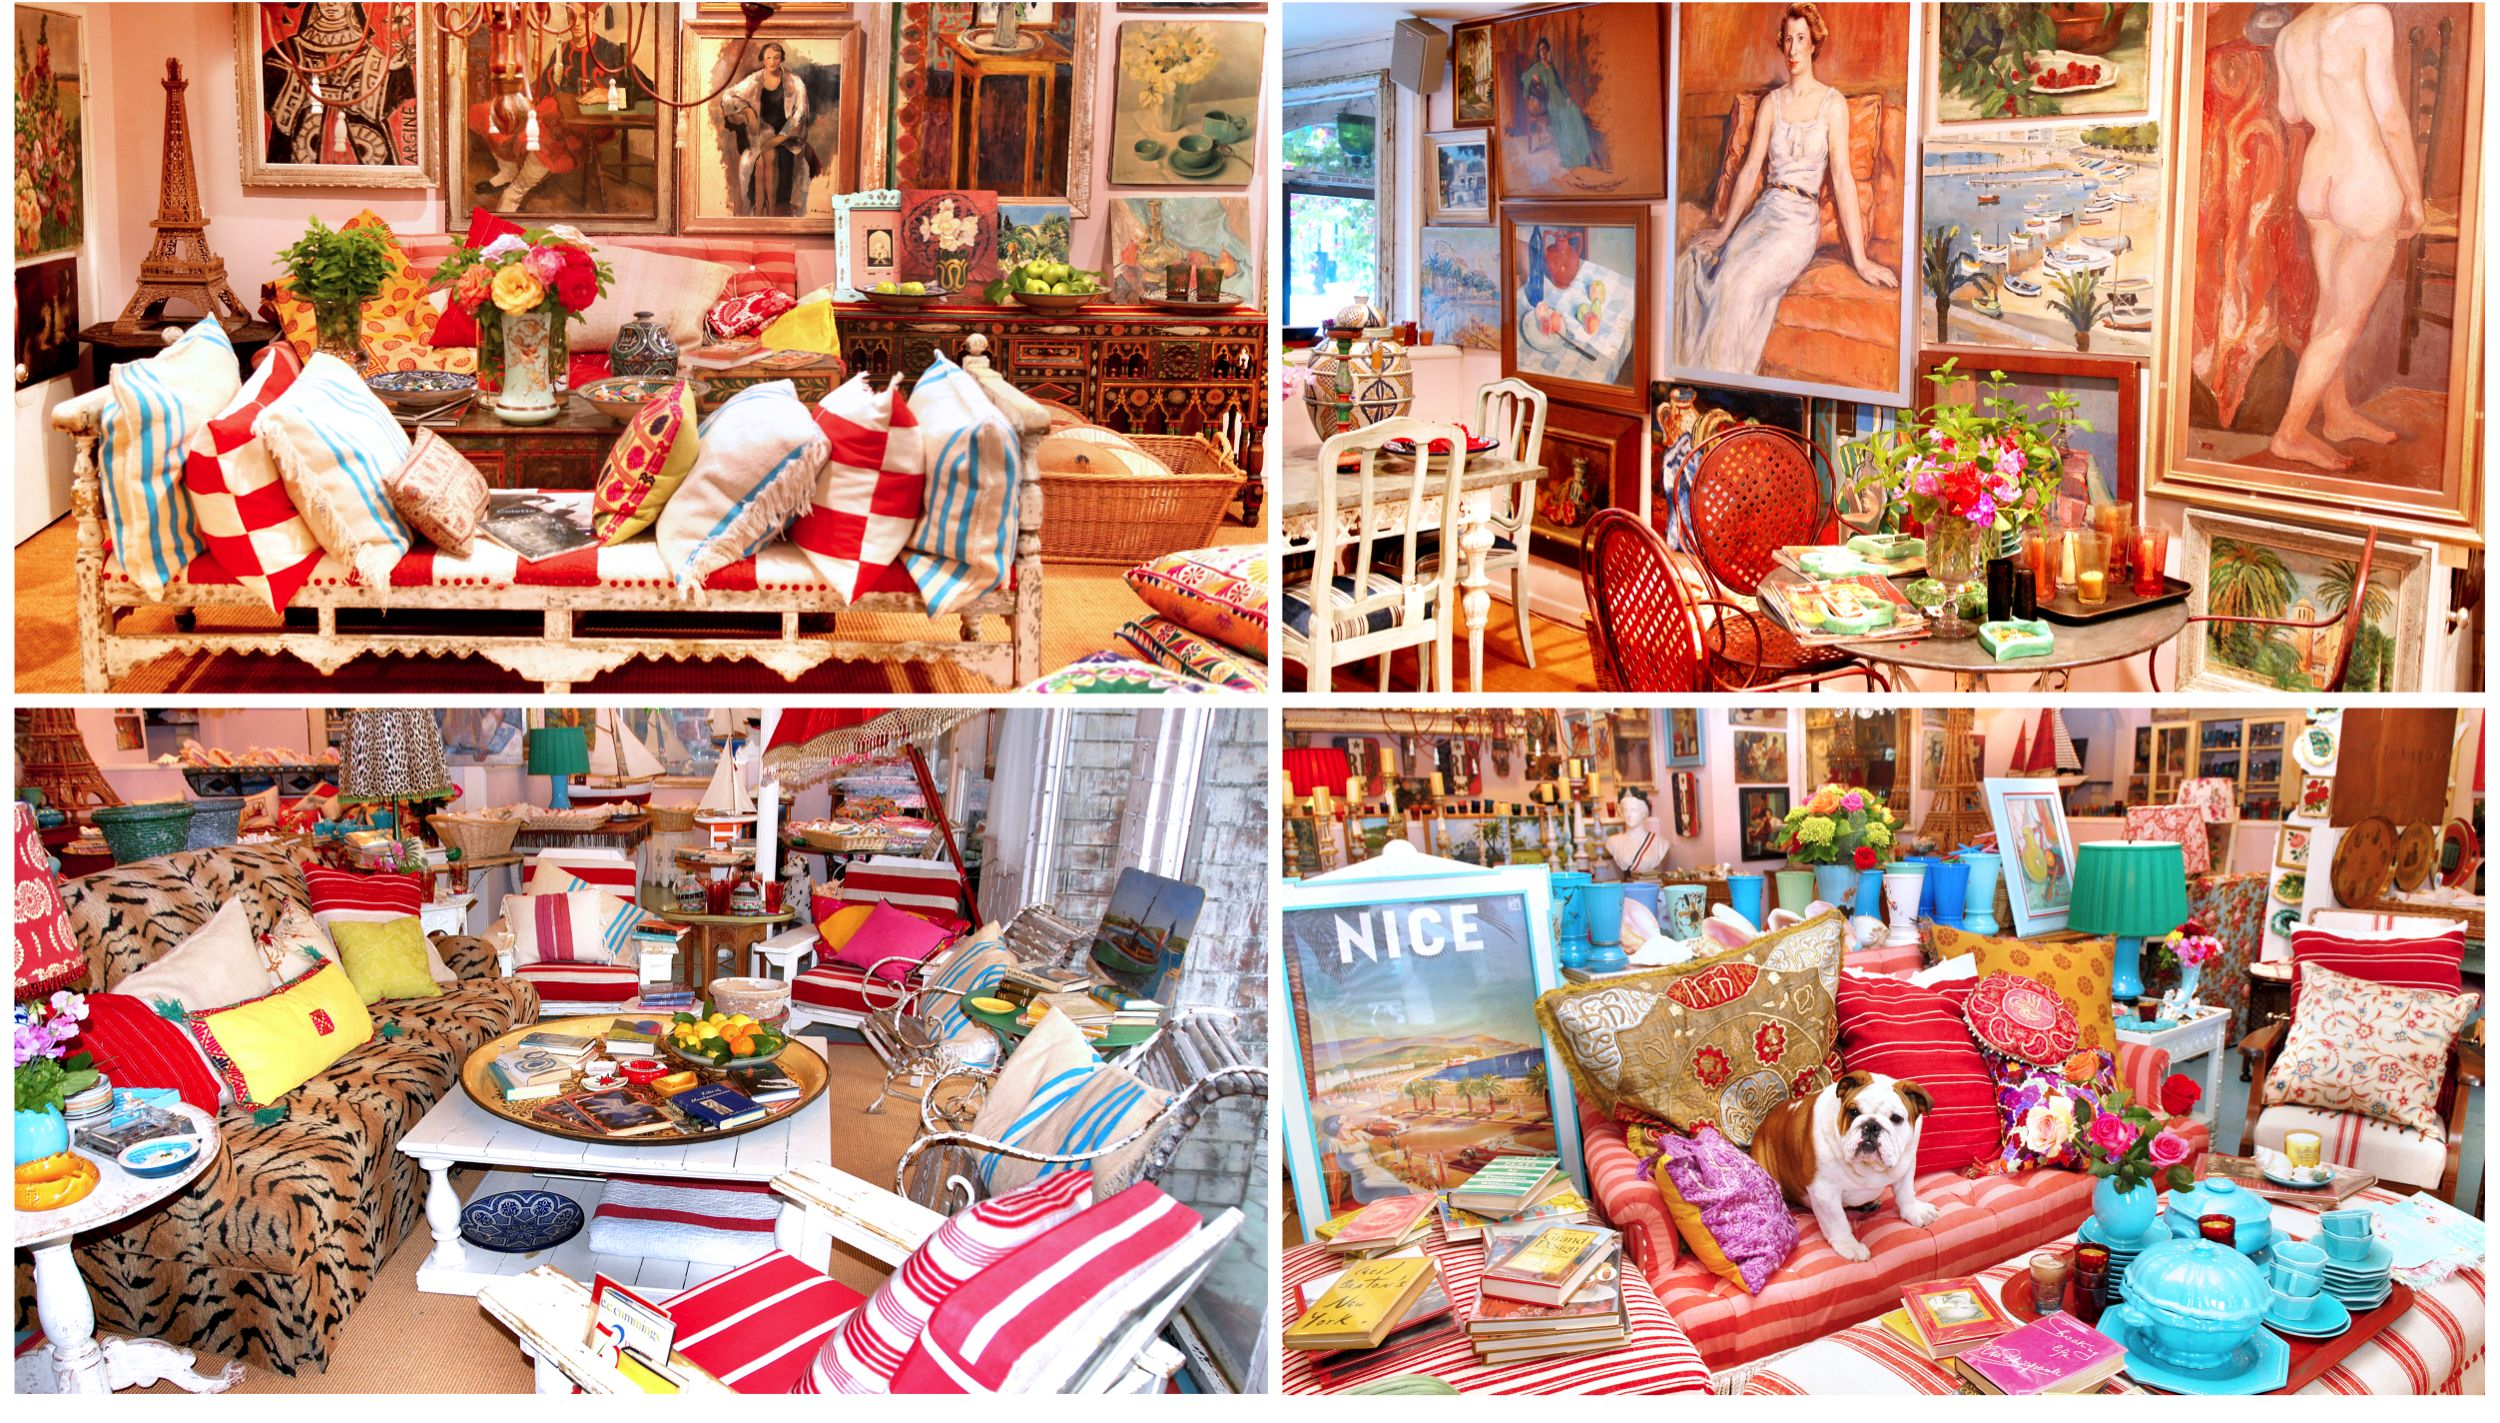 Collage of four images of the Indigo Seas shop interior including sitting areas and tea sets